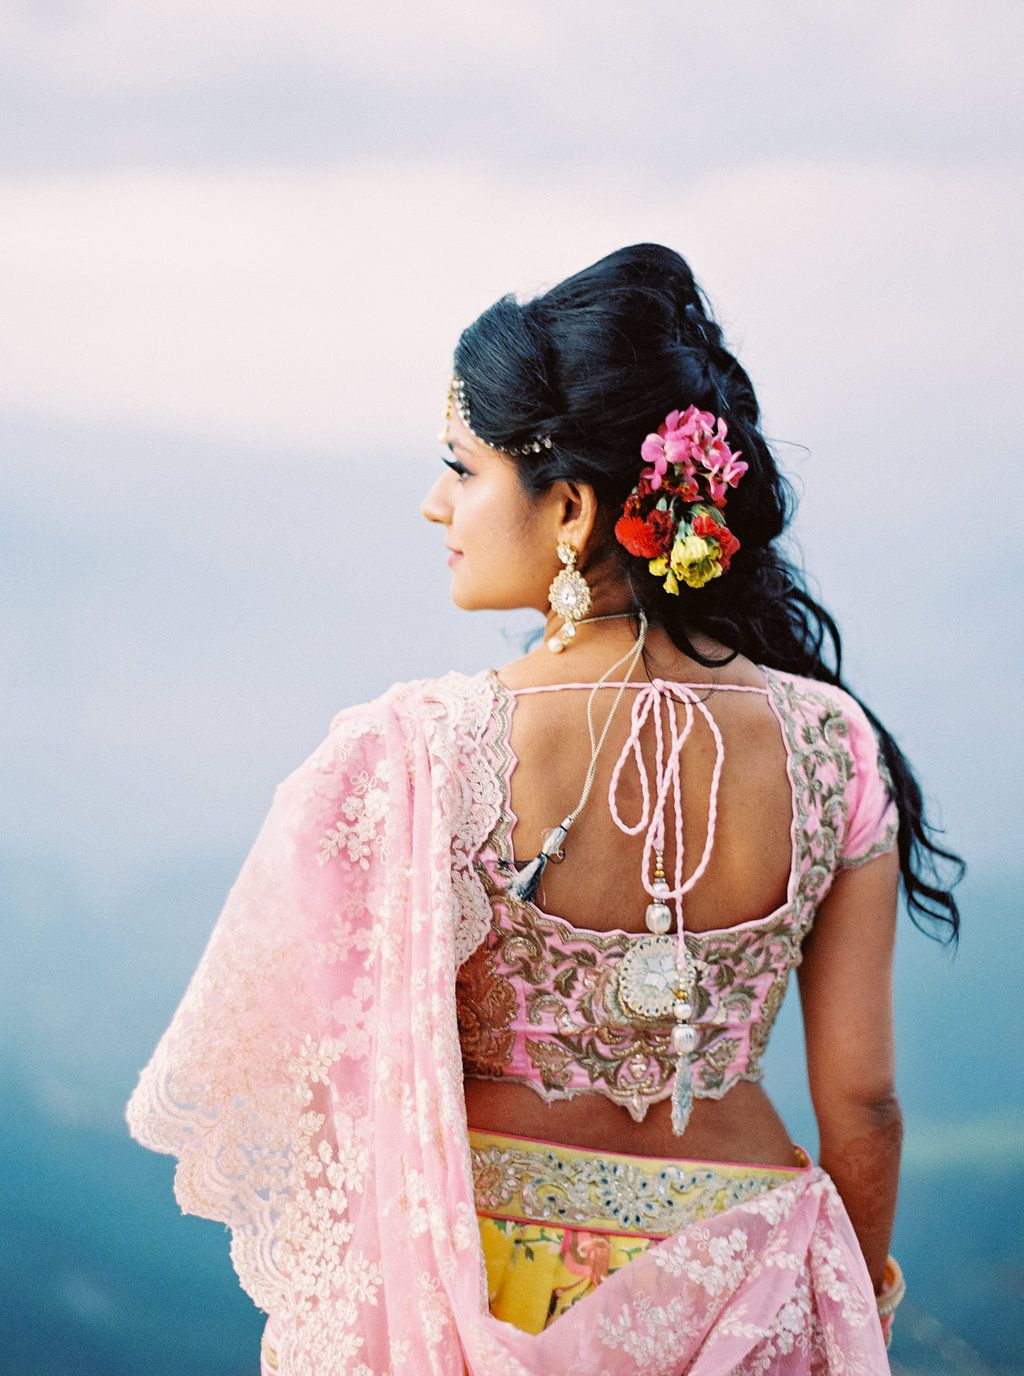 South asian wedding dresses  Endless Color in This MultiDay Indian Wedding  SOUTH ASIAN WEDDING